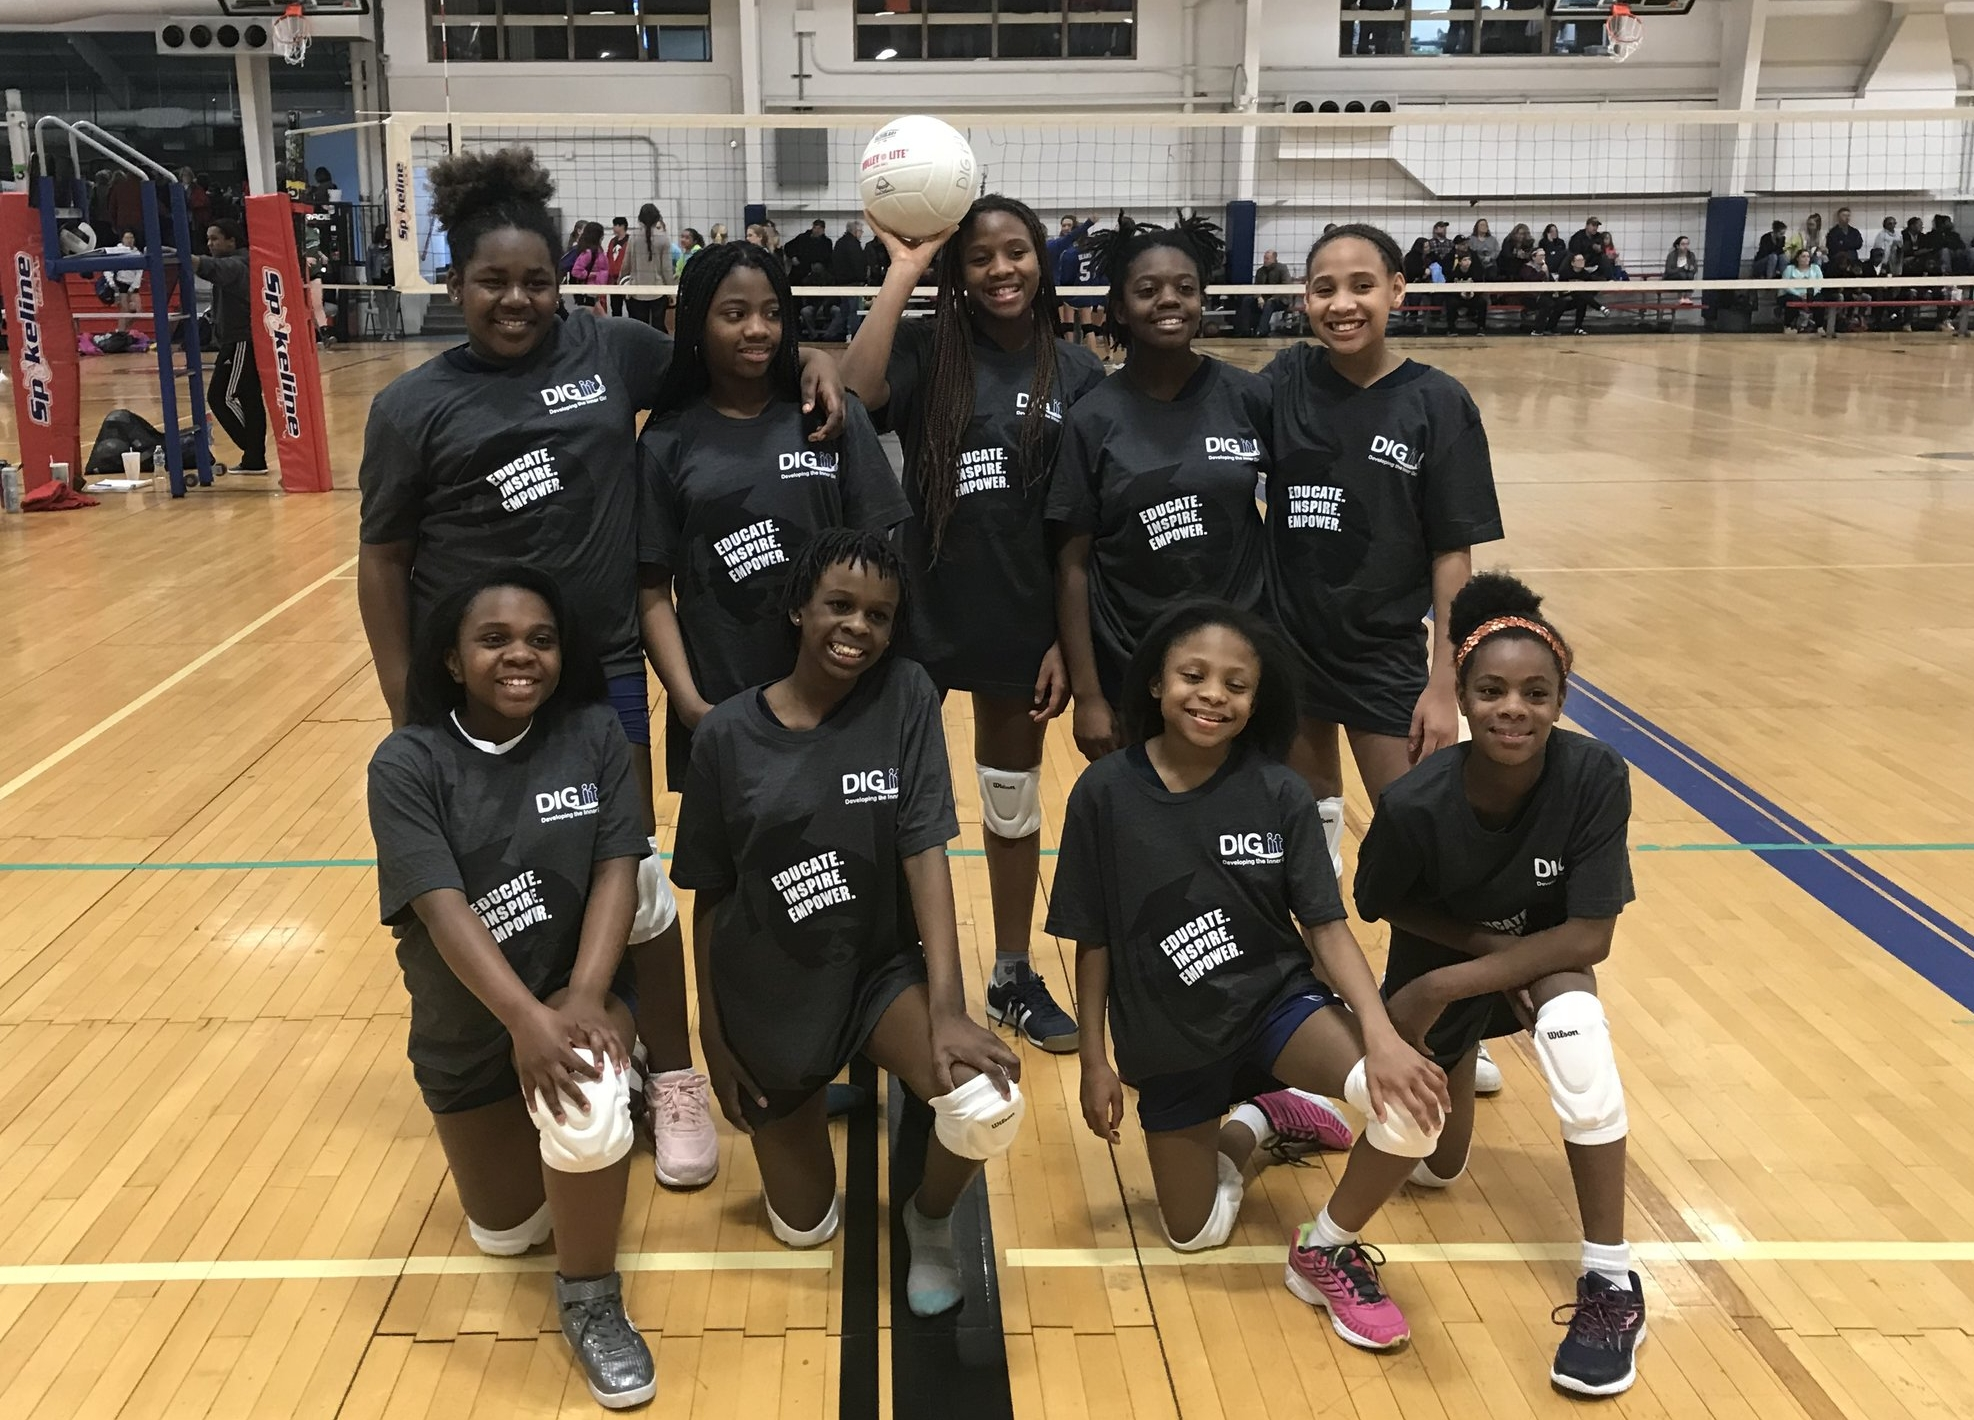 Lee Hamilton BGCSTL DIG it! Team  - Lee Hamilton's Boys & Girls Club DIG it! Volleyball Team is located in North County of St. Louis, MO. The team consists of 4th-5th grade girls who have been members of the DIG it! Program for the last 3 years!